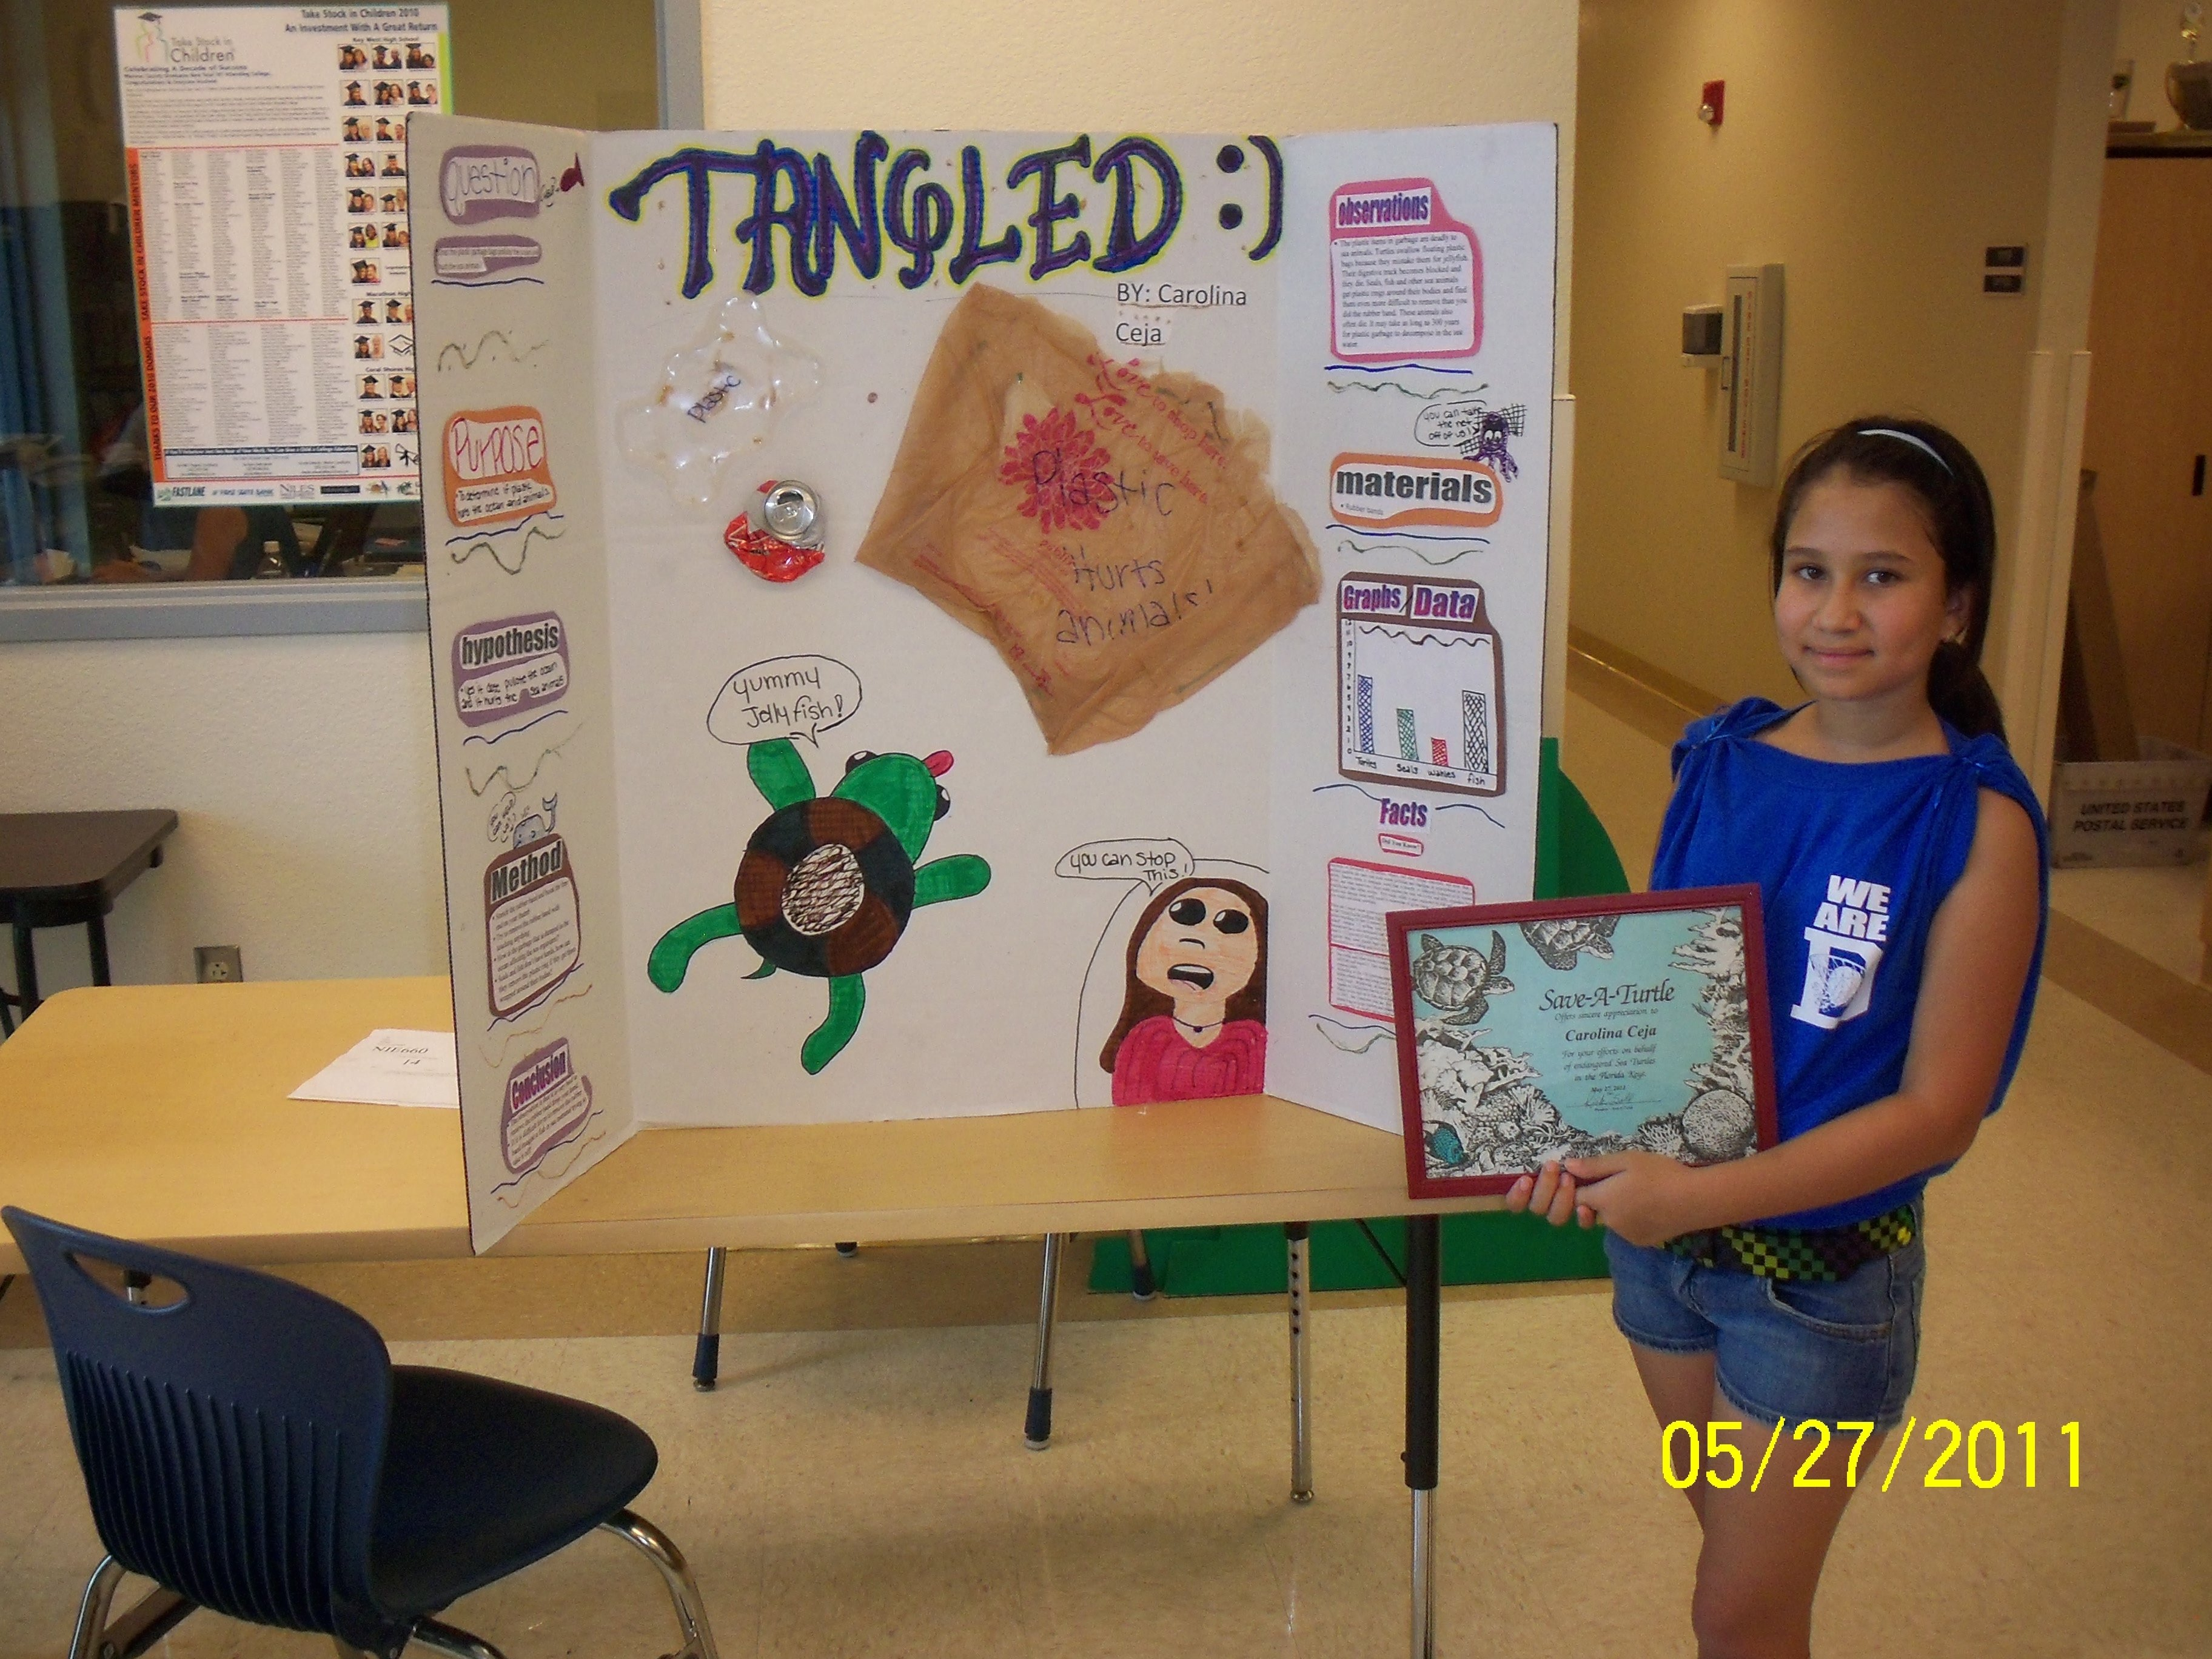 10 Best Science Project Ideas 4Th Grade science fair projects for 1st graders easy ideas of 4th grade 1